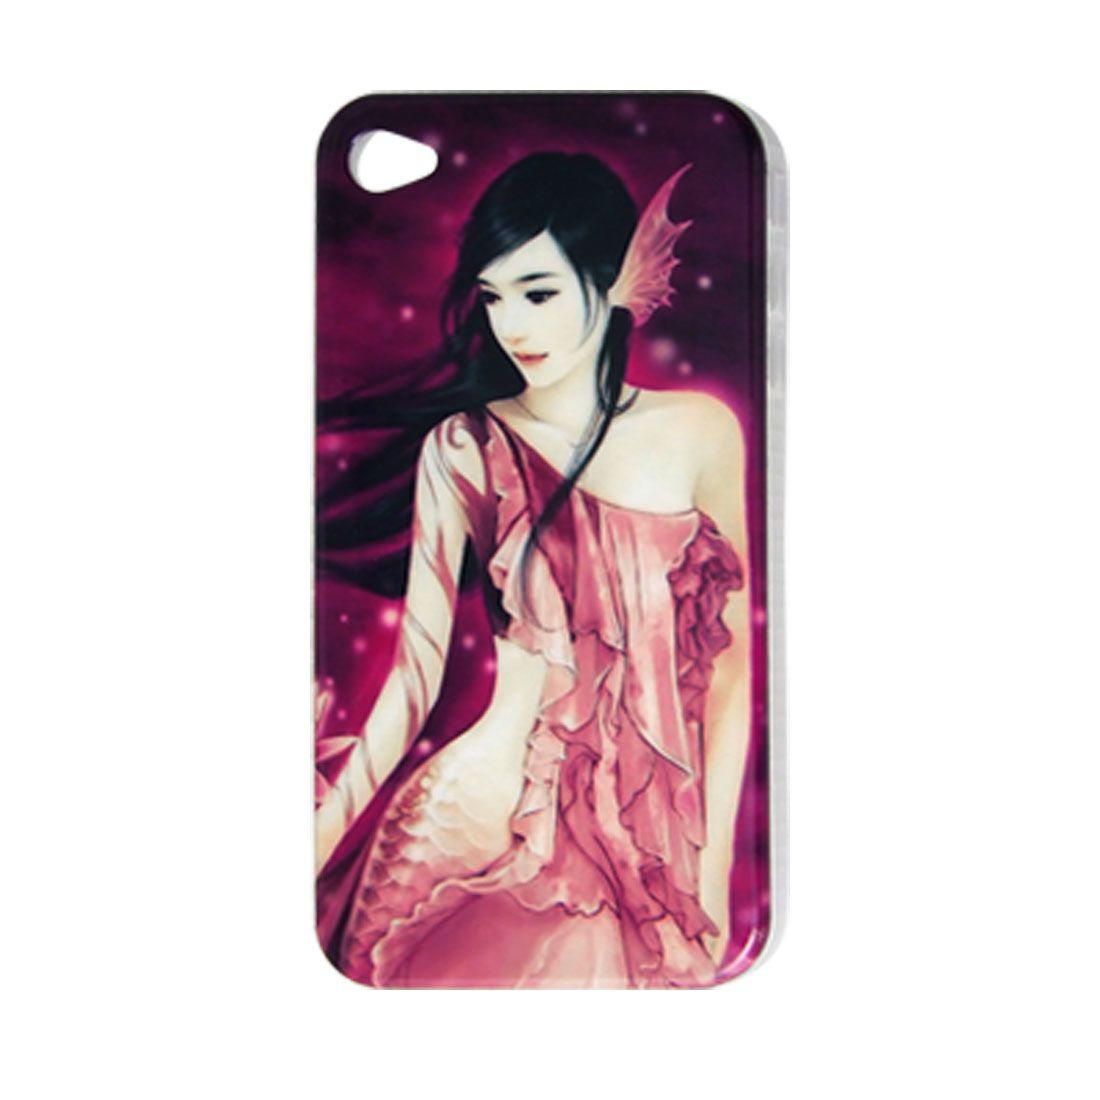 Mermaid Print Hard Plastic IMD Back Case for iPhone 4 4G